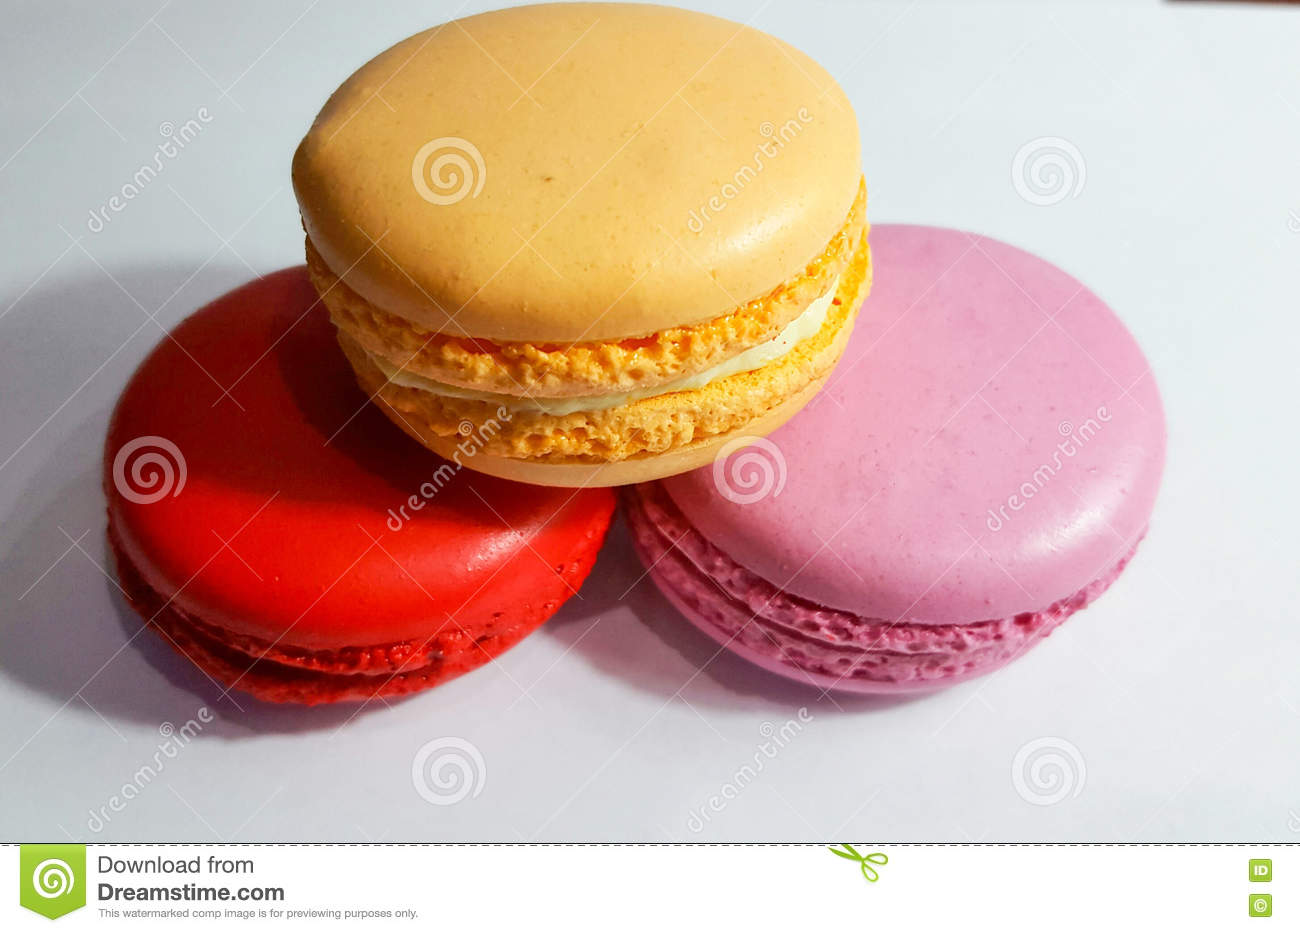 Macaron Is A French Confection Of Egg Whites, Powdered Sugar ...